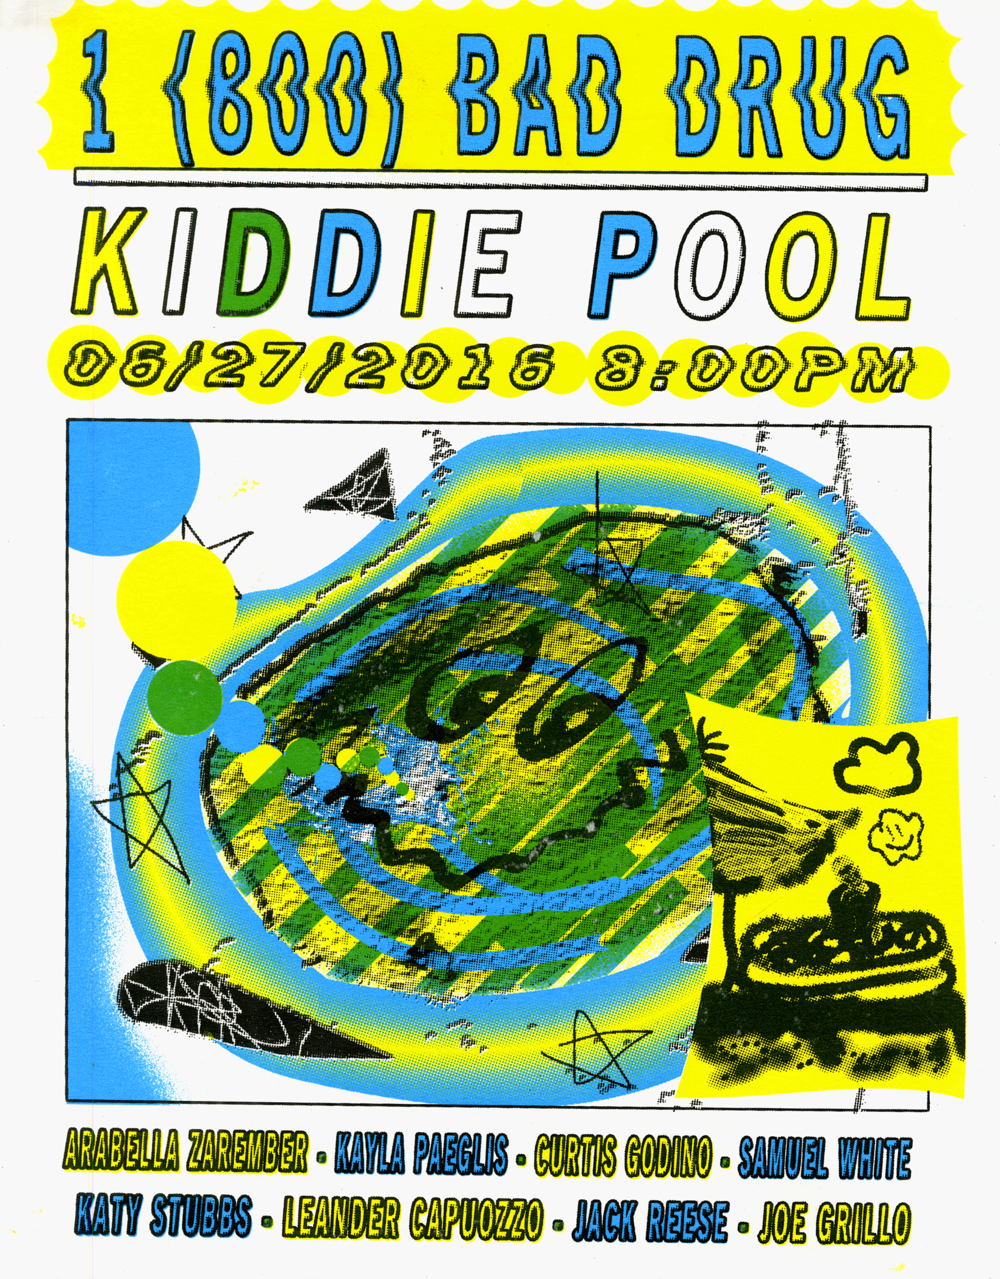 1 (800) BAD-DRUG: KIDDIE POOL